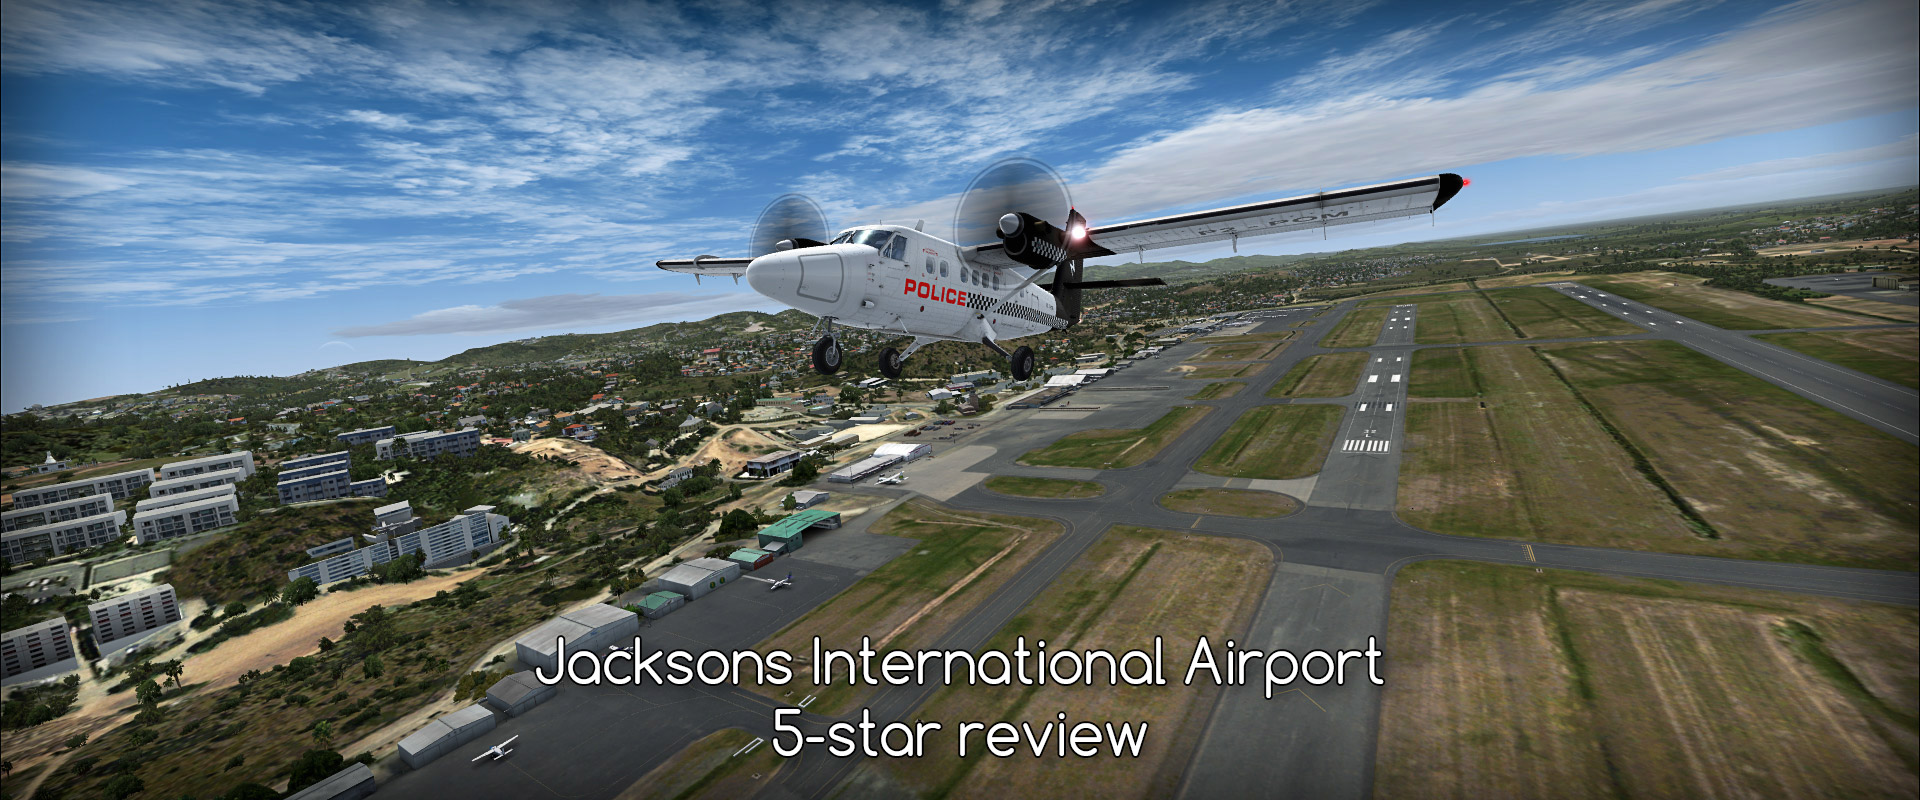 Jacksons International Airport - ORBX - review (5*) PNG#3